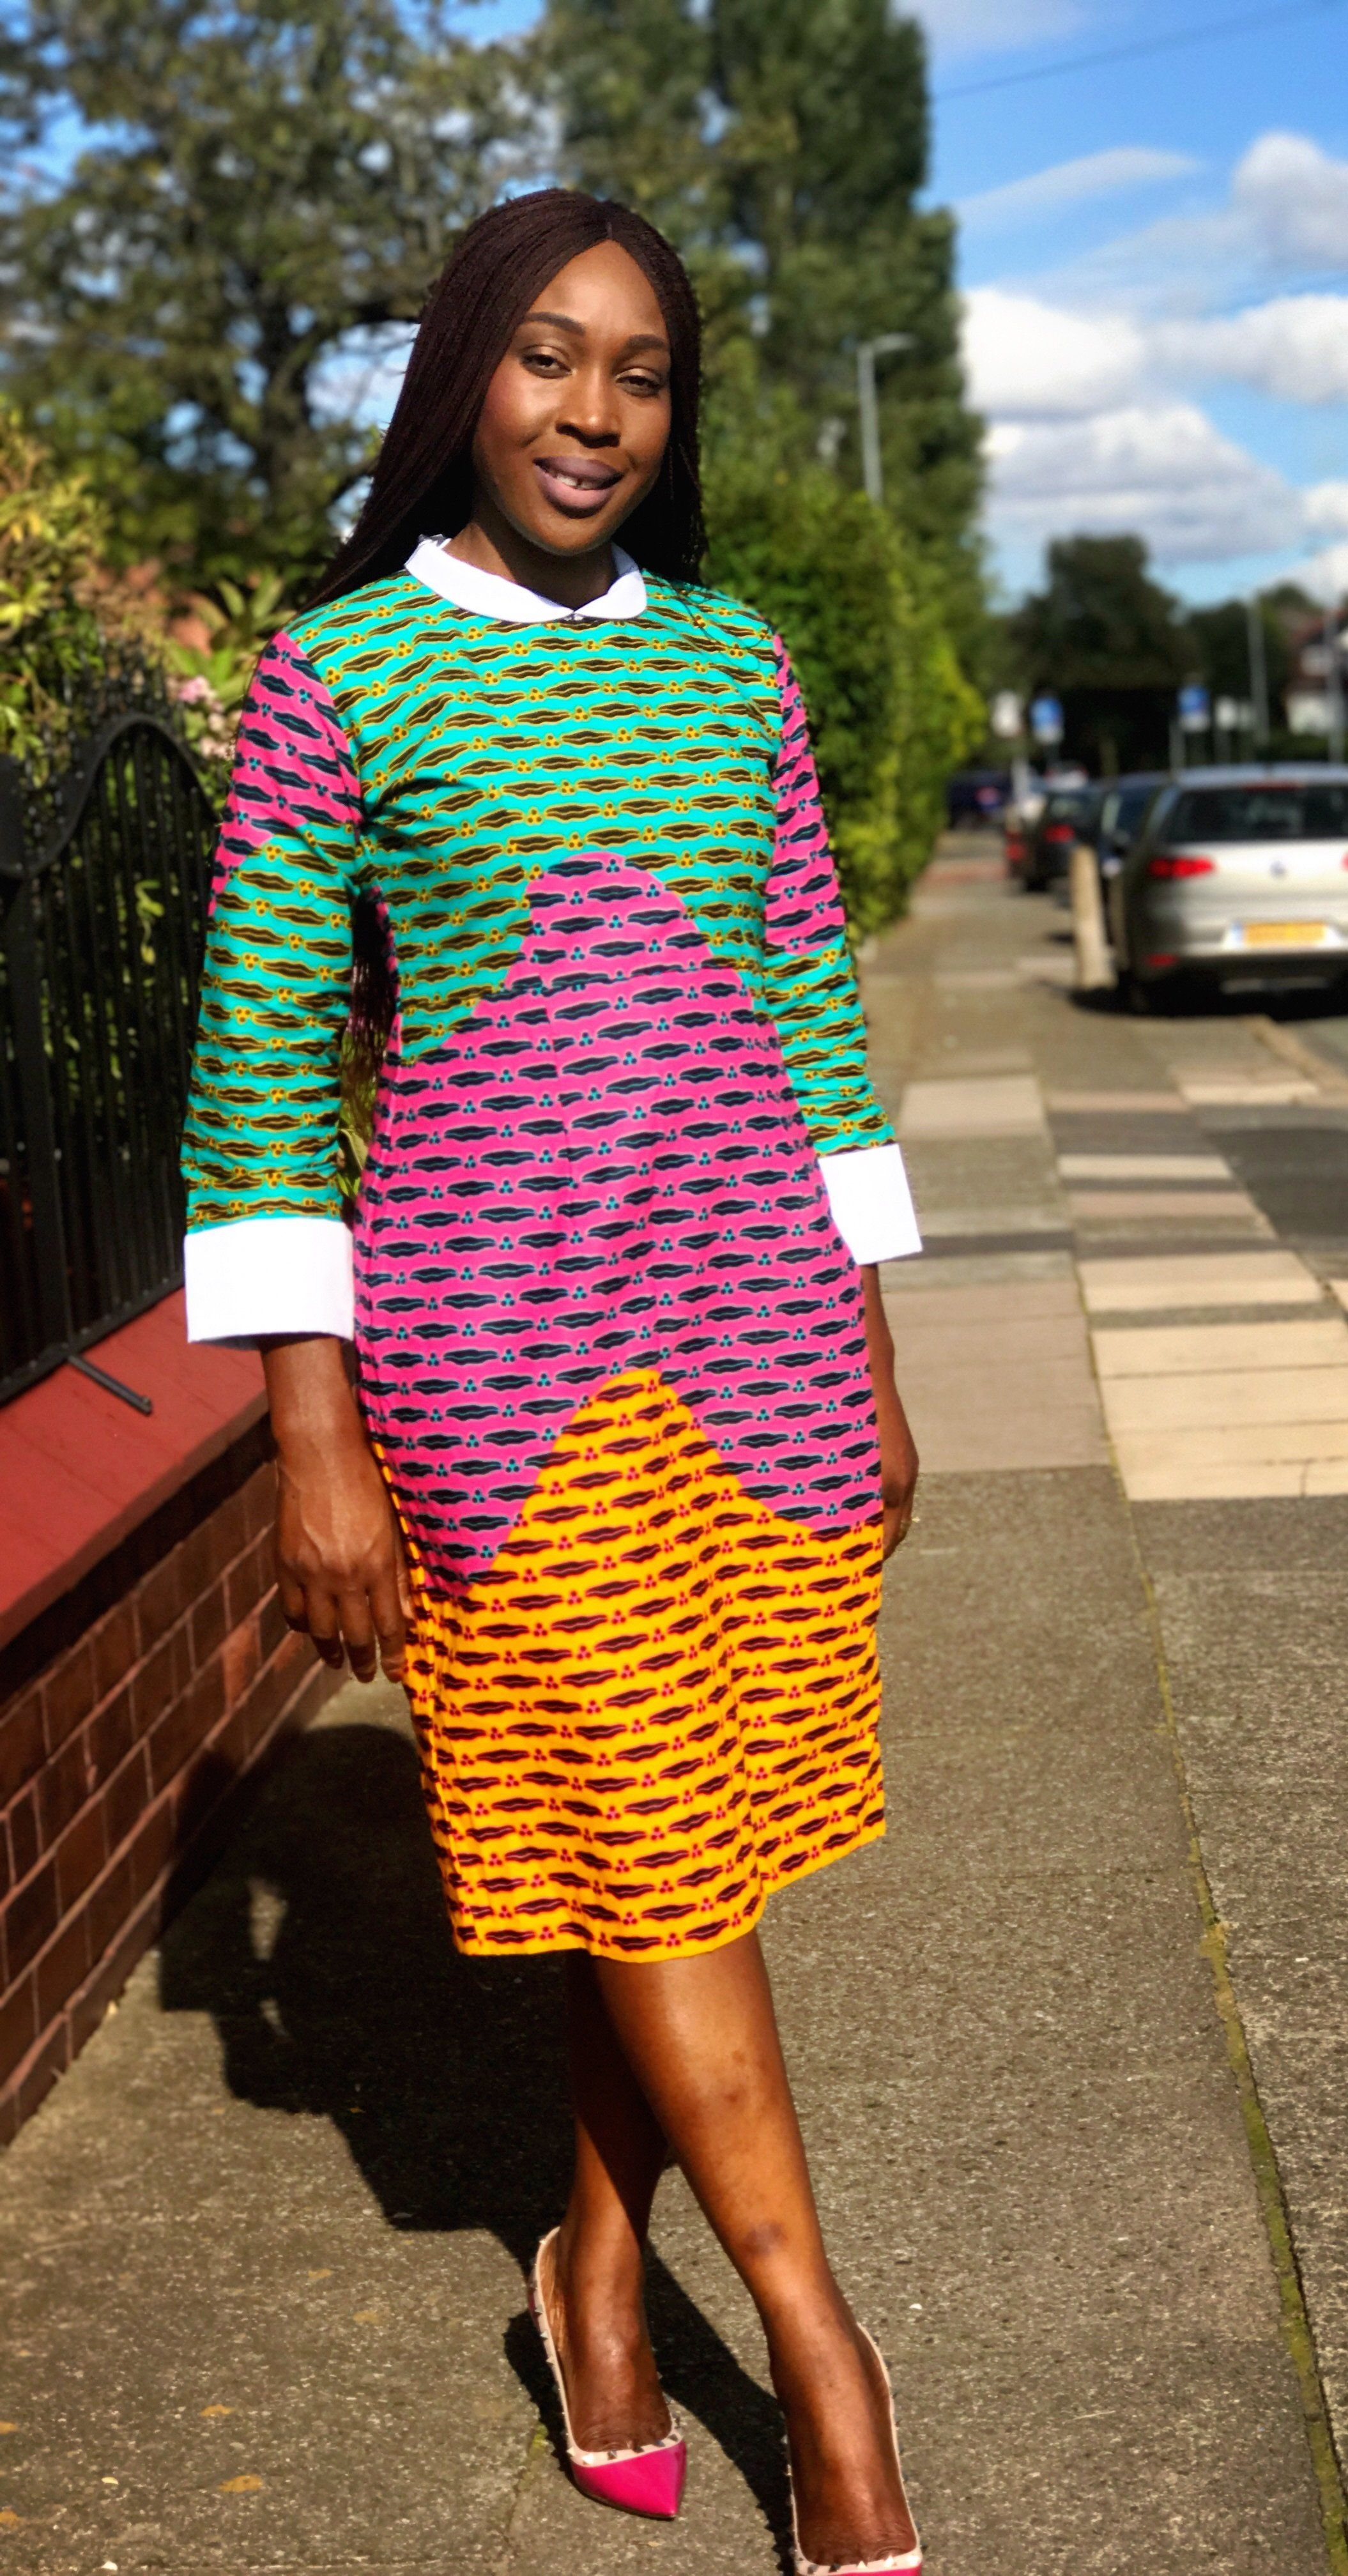 a7601b235 Vibrant Mixed coloured Ankara print collar dress custom made to fit  perfectly to your silhouette. It is made with 100% cotton Ankara fabric.